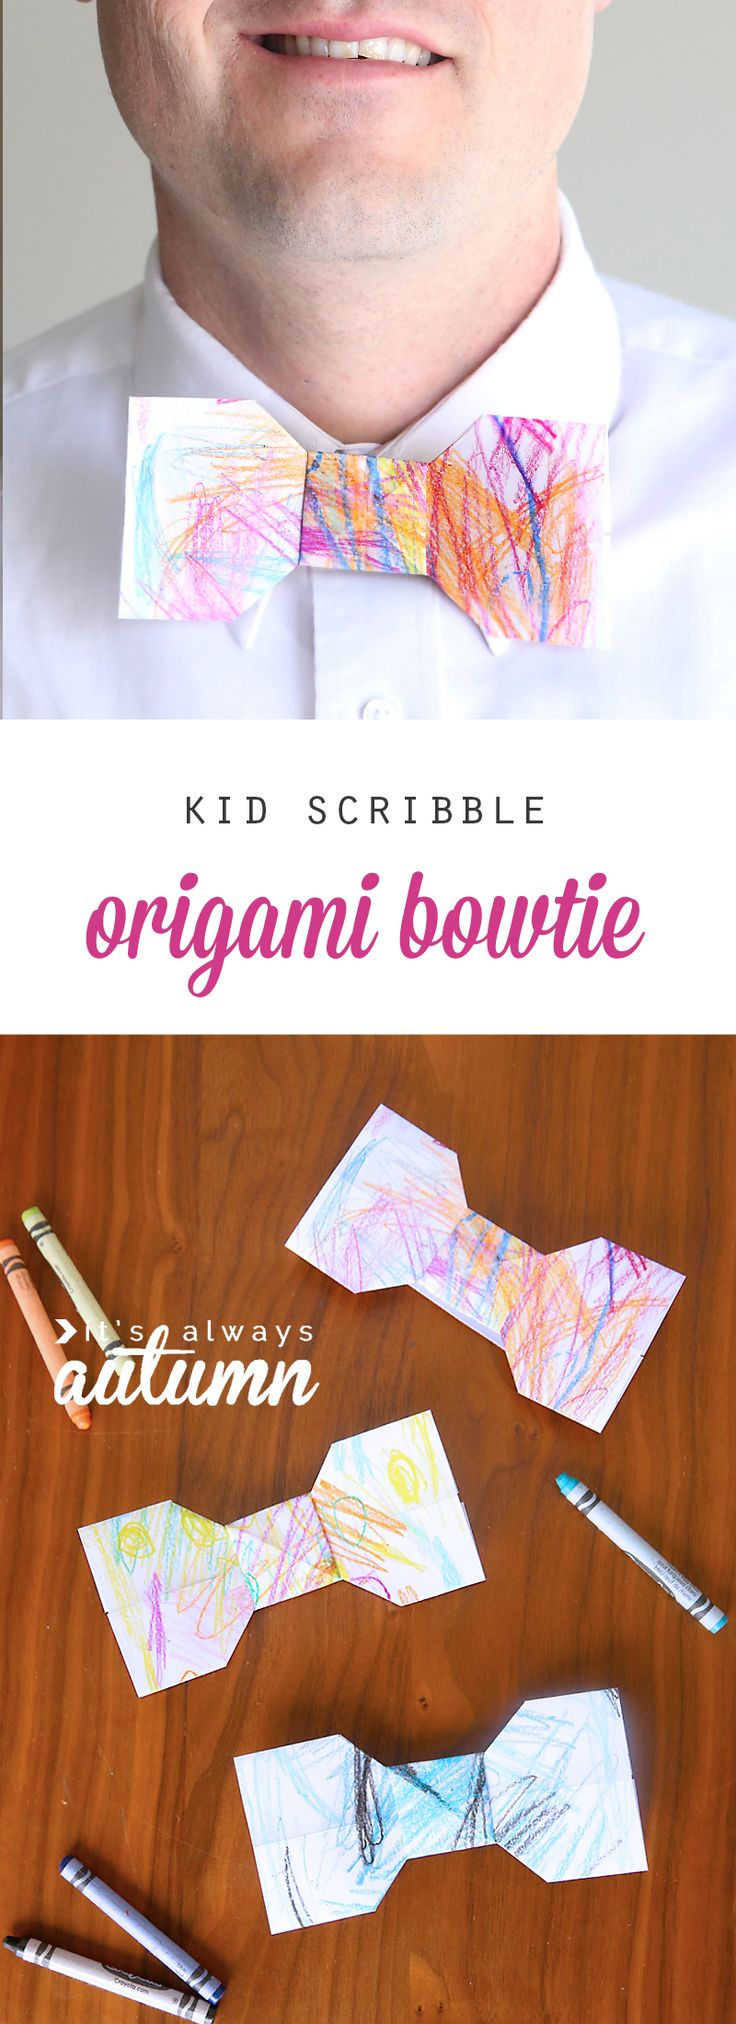 1000+ ideas about Origami Gifts on Pinterest | Origami ... - photo#45